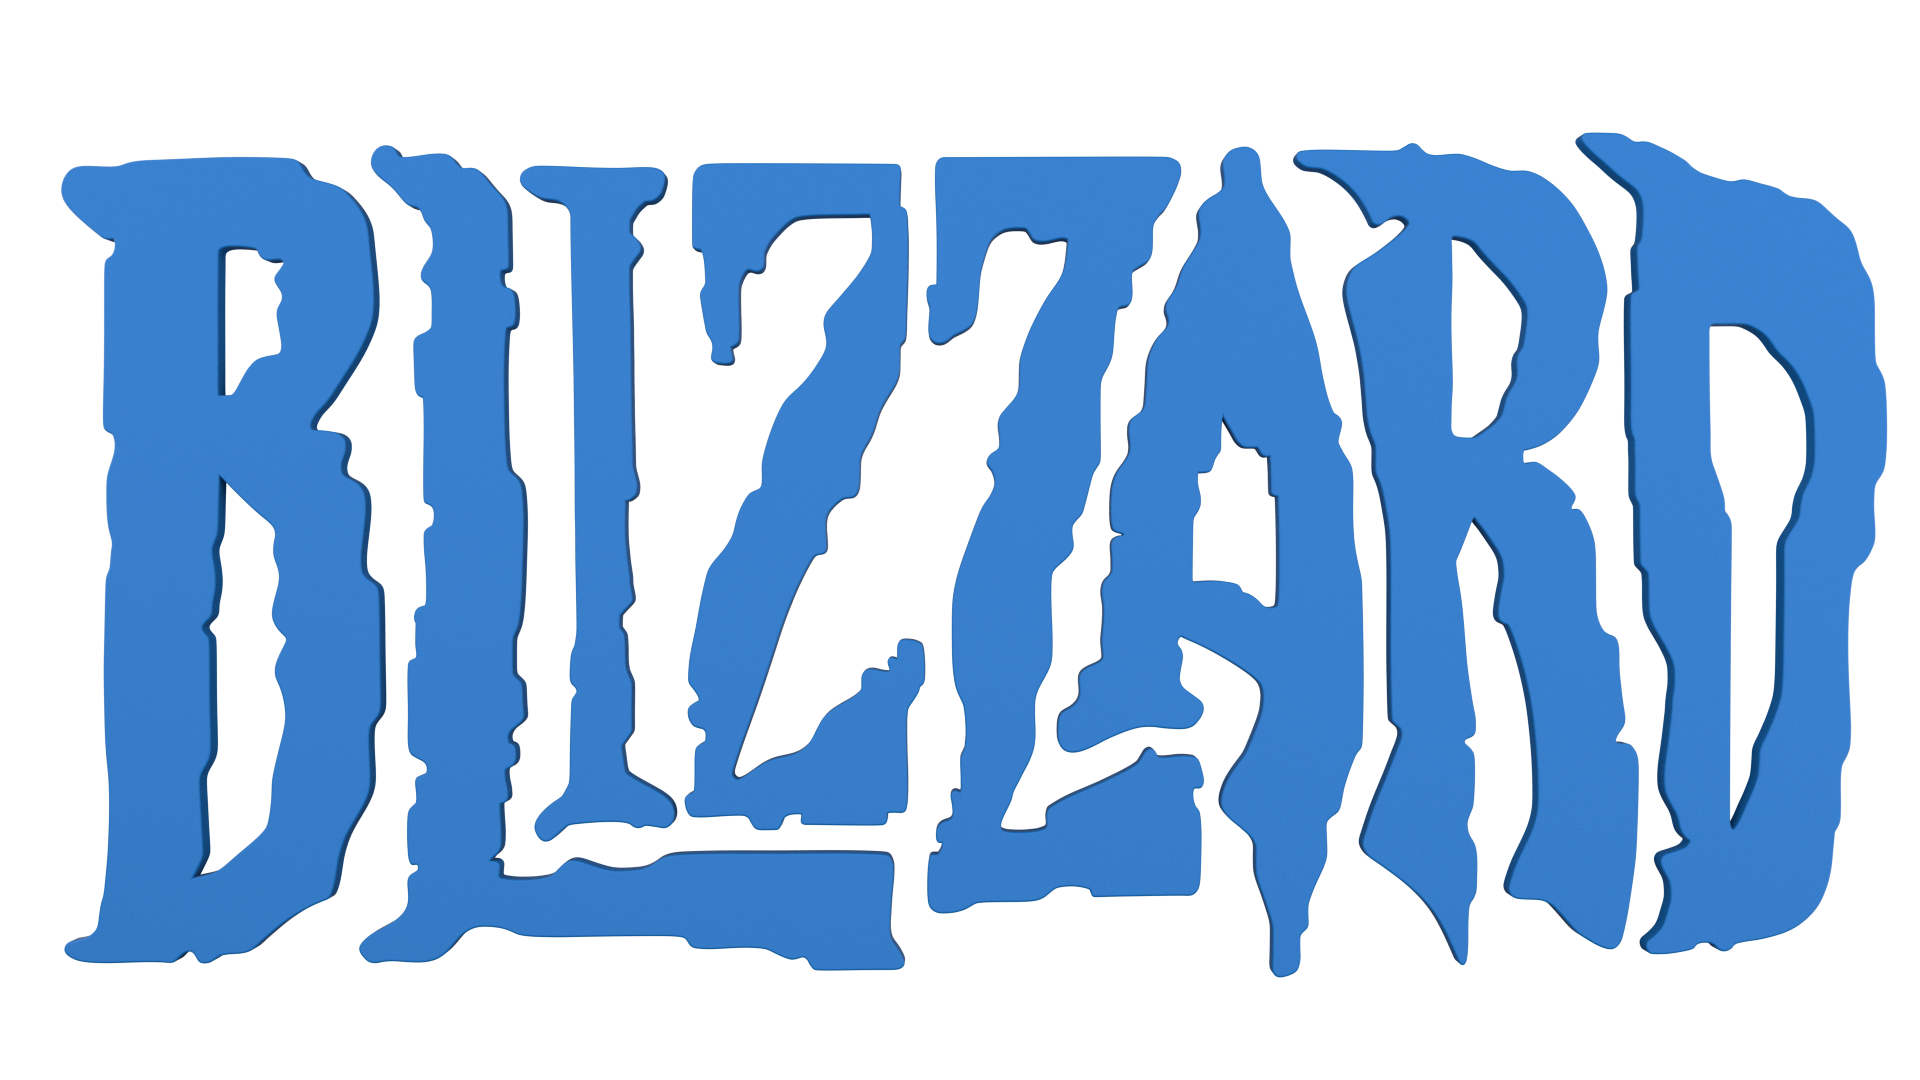 blizzard_logo_by_tardifice-d9gbb7d.png